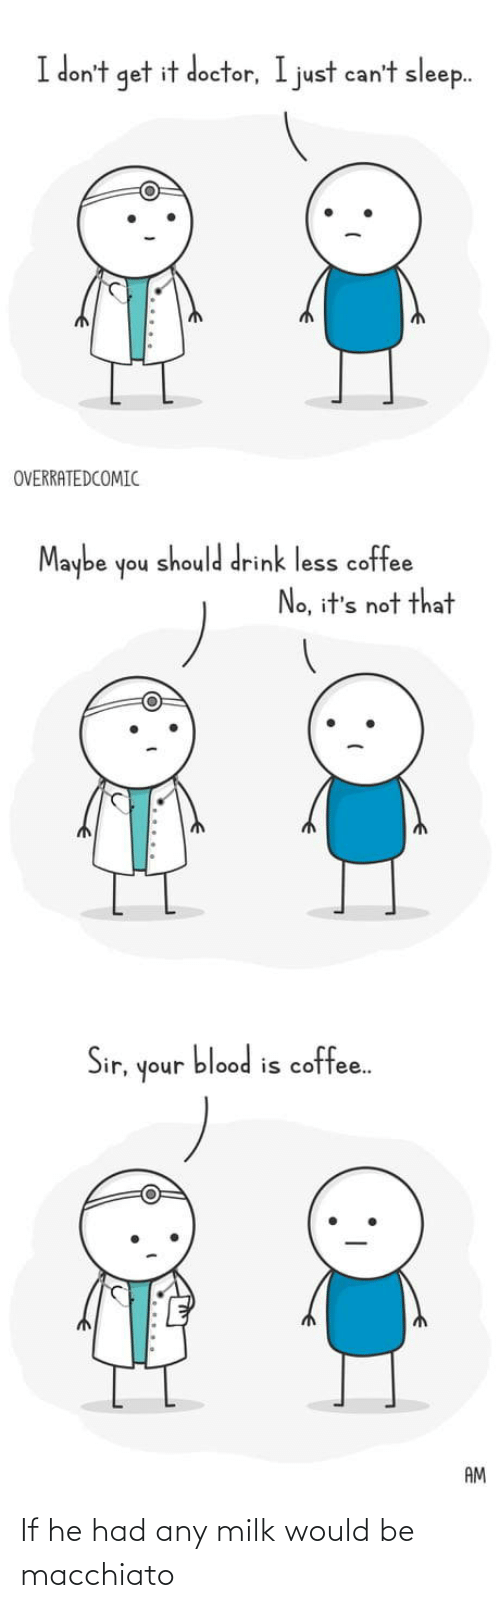 Dont Get It: I don't get it doctor, I just can't sleep.  OVERRATEDCOMIC  Maybe  should drink less coffee  noh  No, it's not that  blood is coffee.  Sir,  unoh  AM If he had any milk would be macchiato